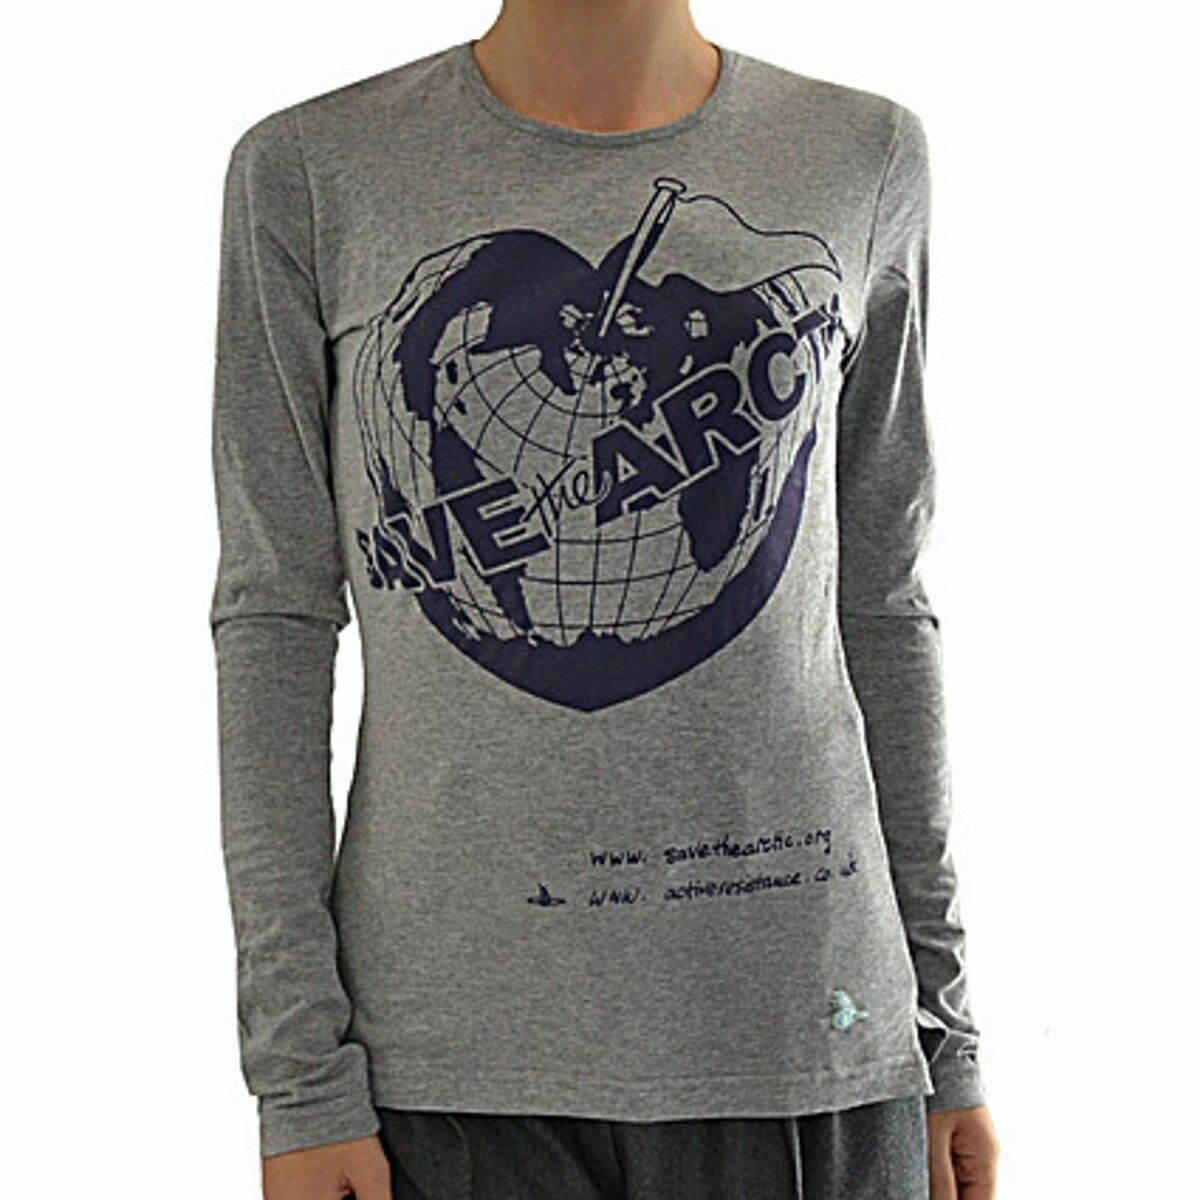 Vivienne Westwood t-shirt Artic ml, Artic tshirt long sleevs